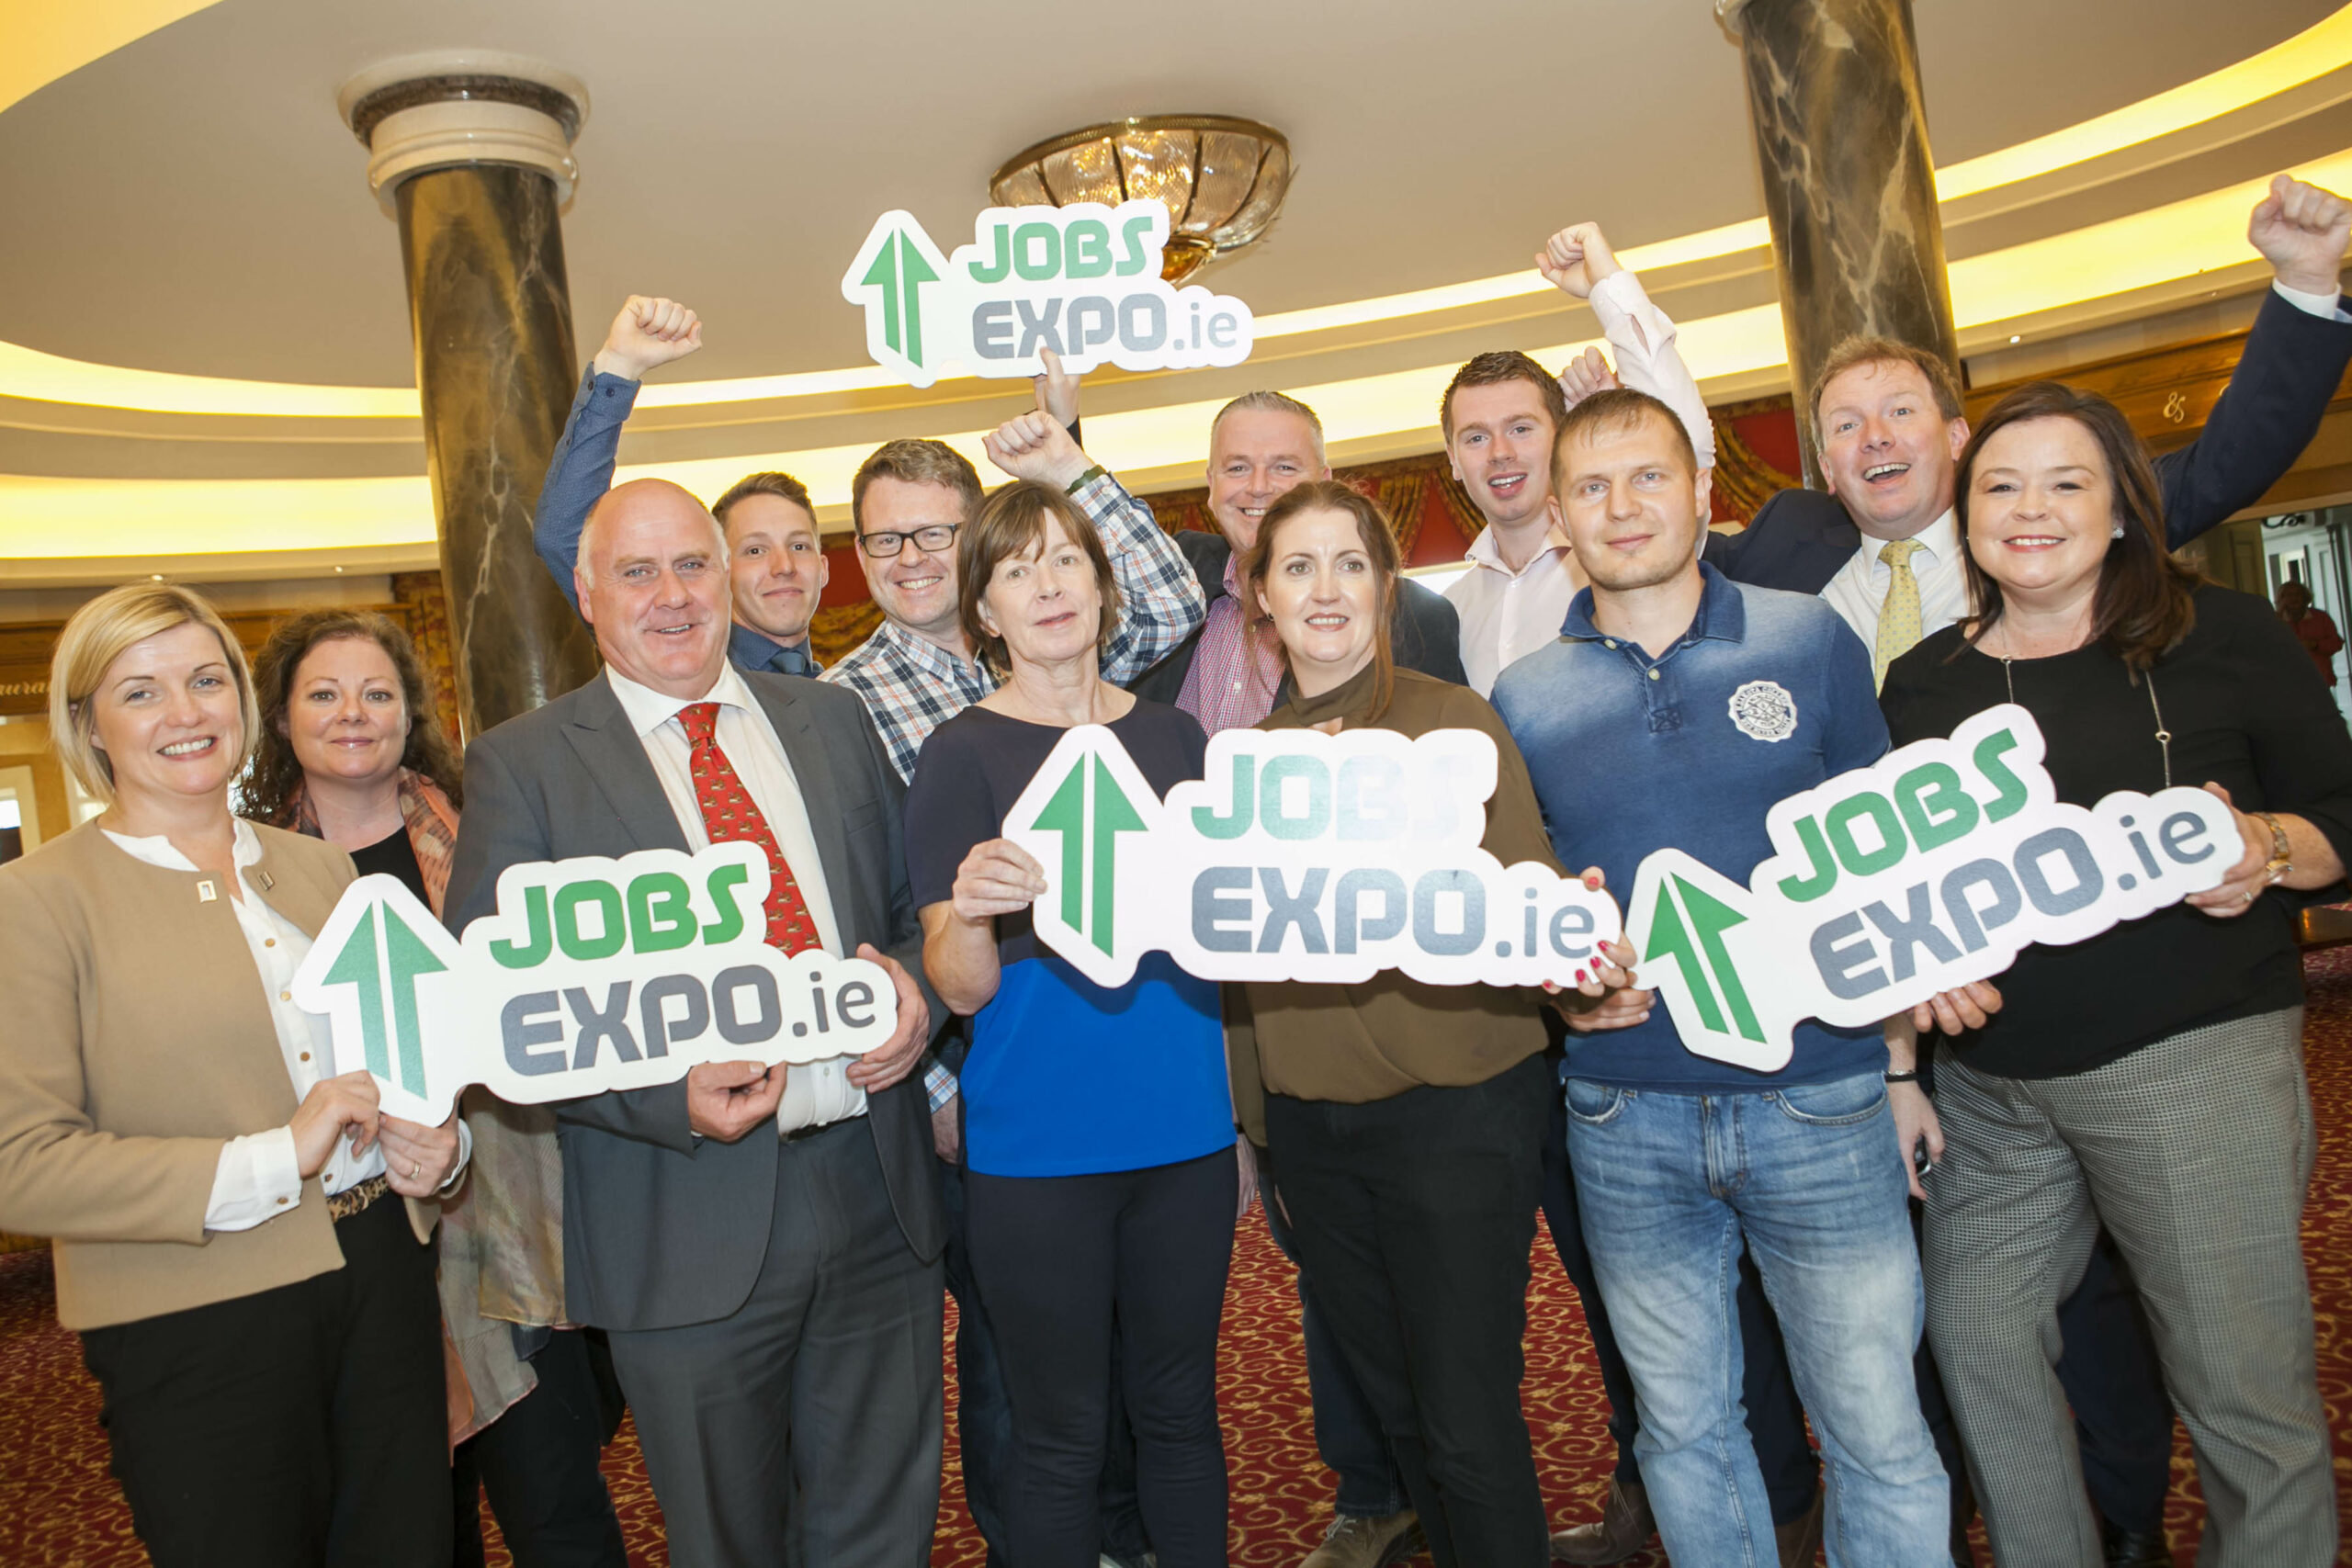 Major Jobs Expo takes place in Galway on Saturday 16th September